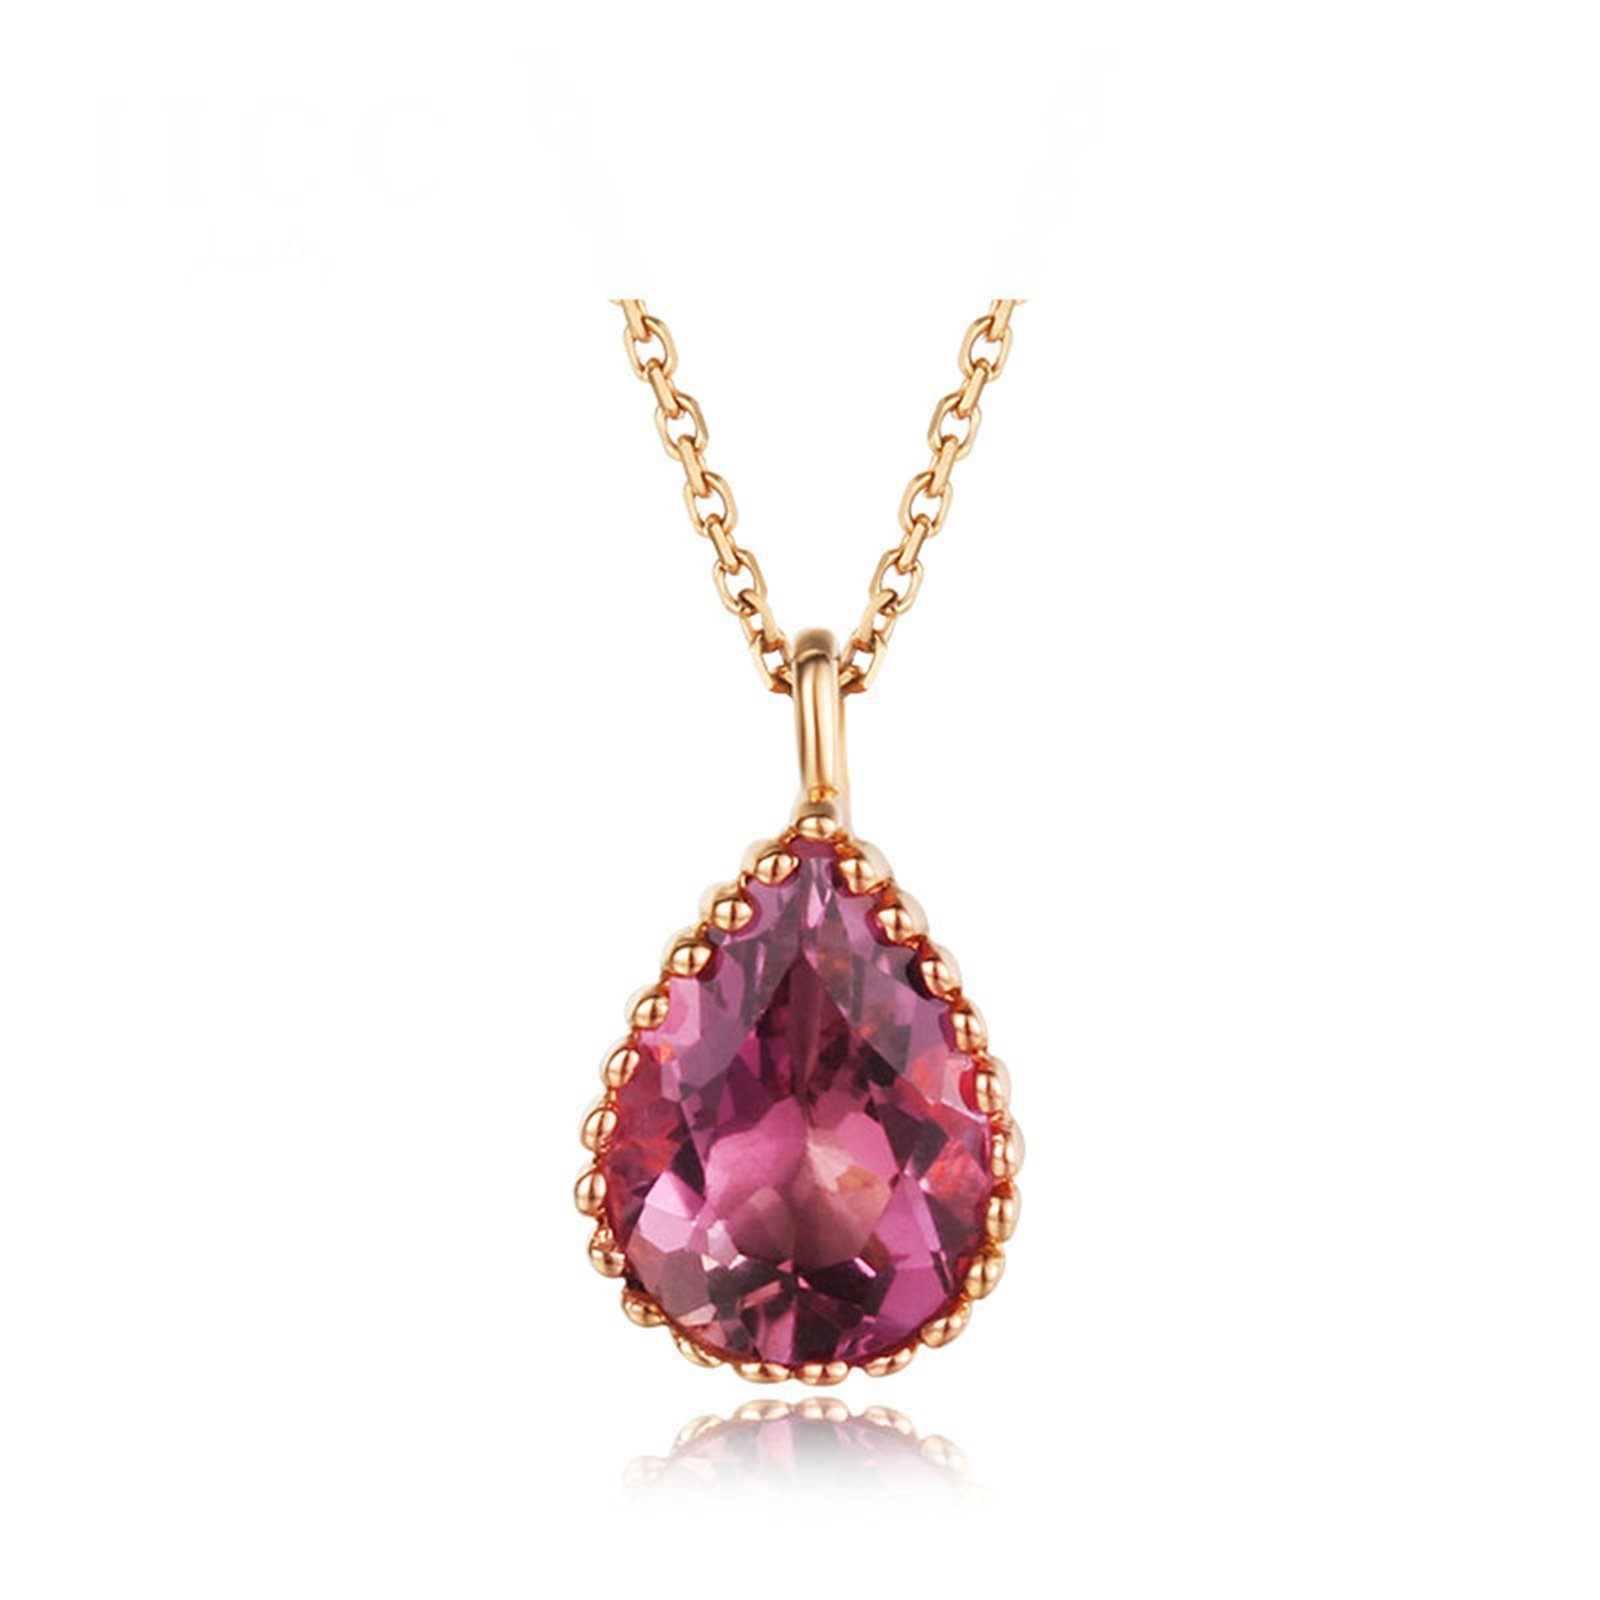 Daesar 18K Gold Necklace For Women Water Drop Pendant Necklace Gemstone Pear Tourmaline Pink Length:40CM by Daesar